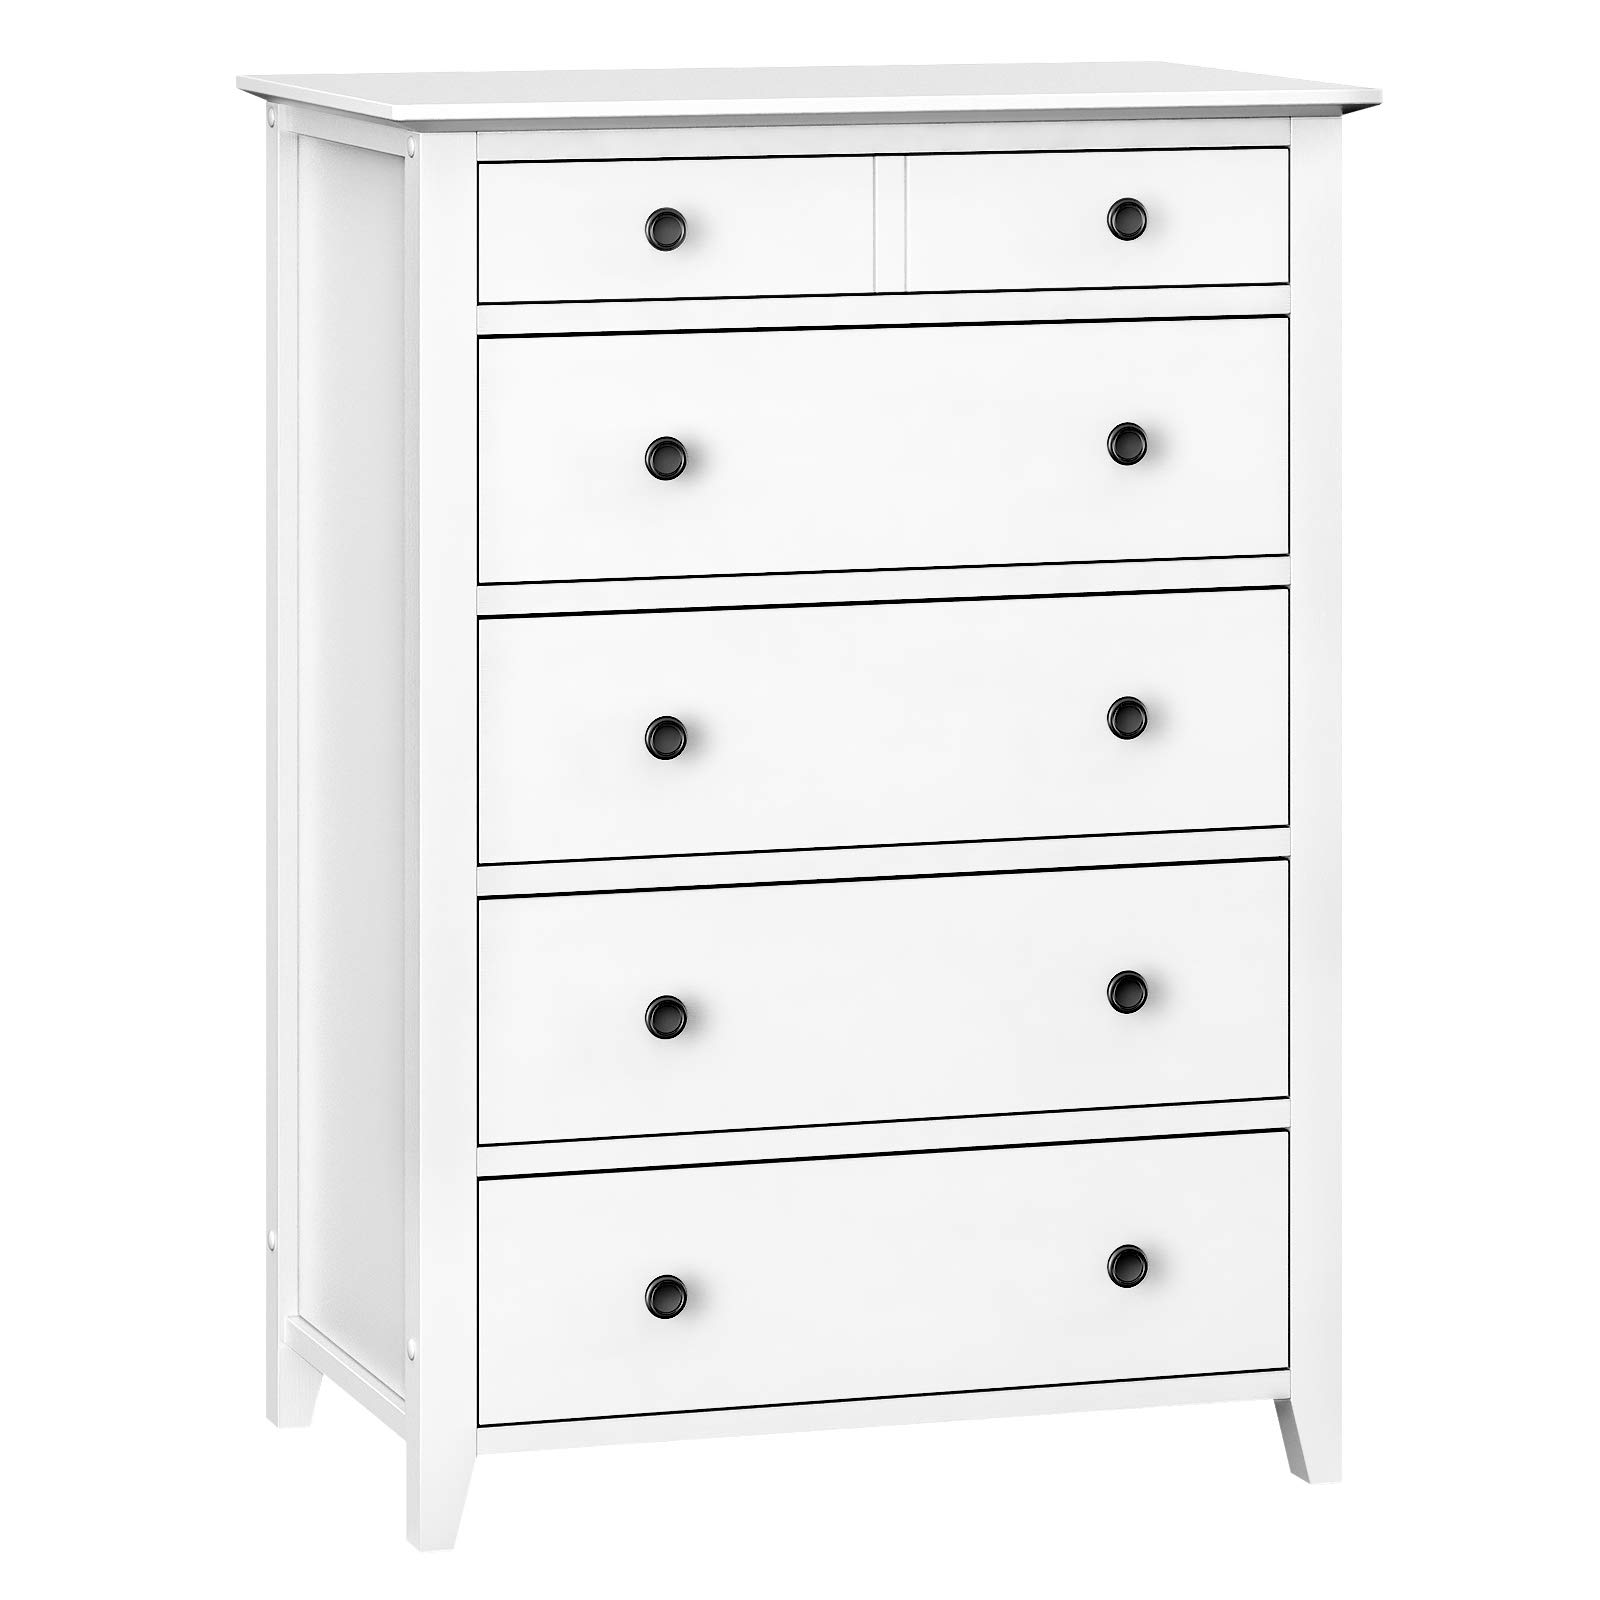 VASAGLE Chest of Drawers, 5-Drawer Dresser with Solid Wood Frame, Storage Unit for The Bedroom, Living Room, Kid's Room, with Antique-Style Handles, Easy Installation, White URCD01WT by VASAGLE